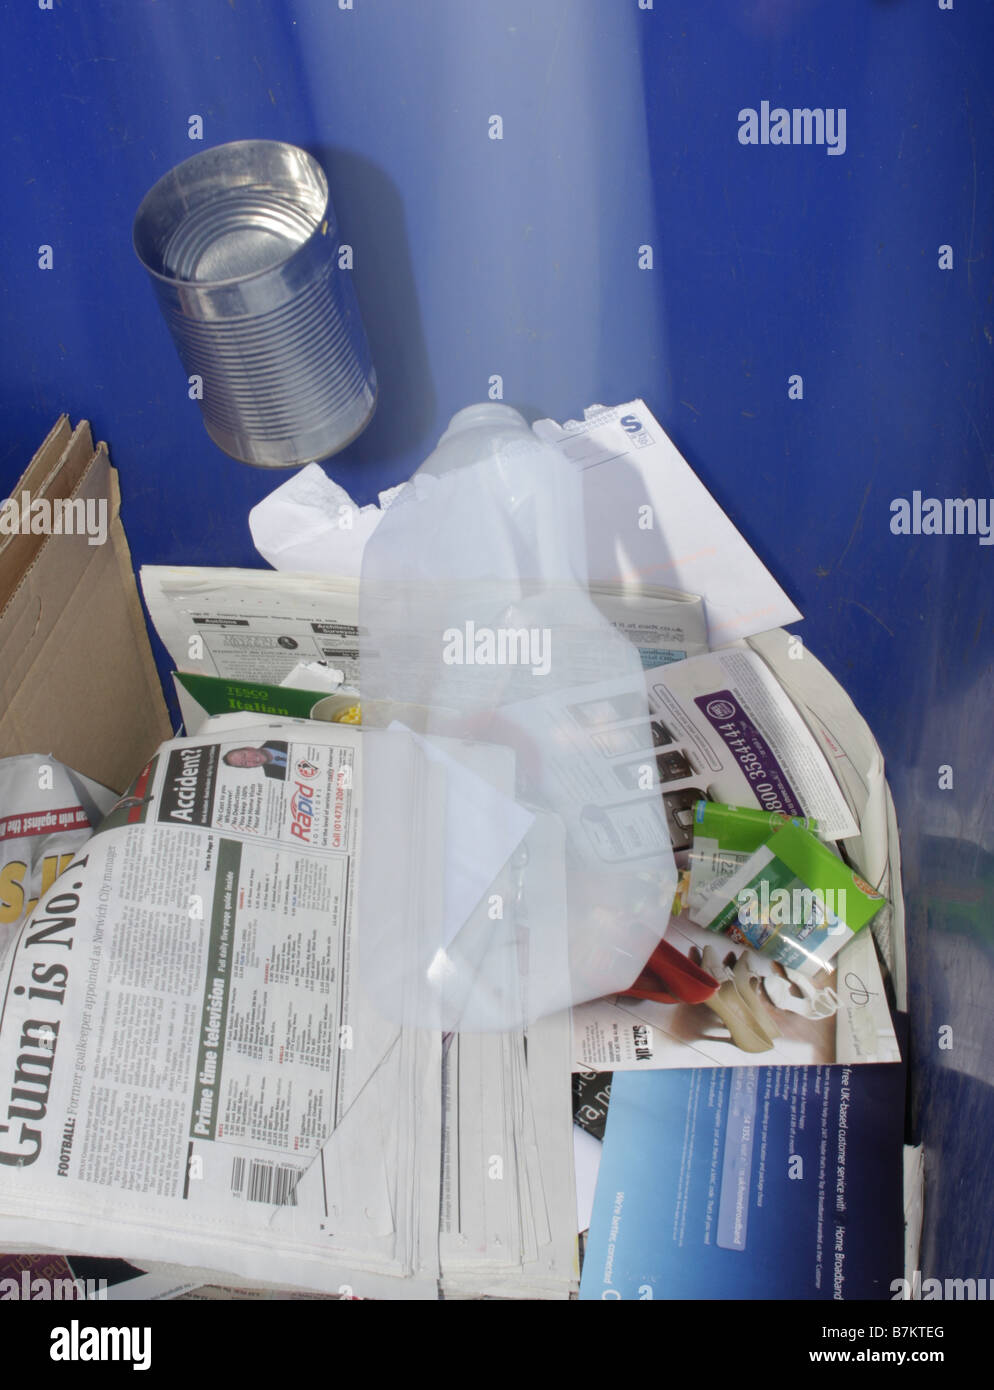 waste paper cans and plastic falling into recycle bin - Stock Image